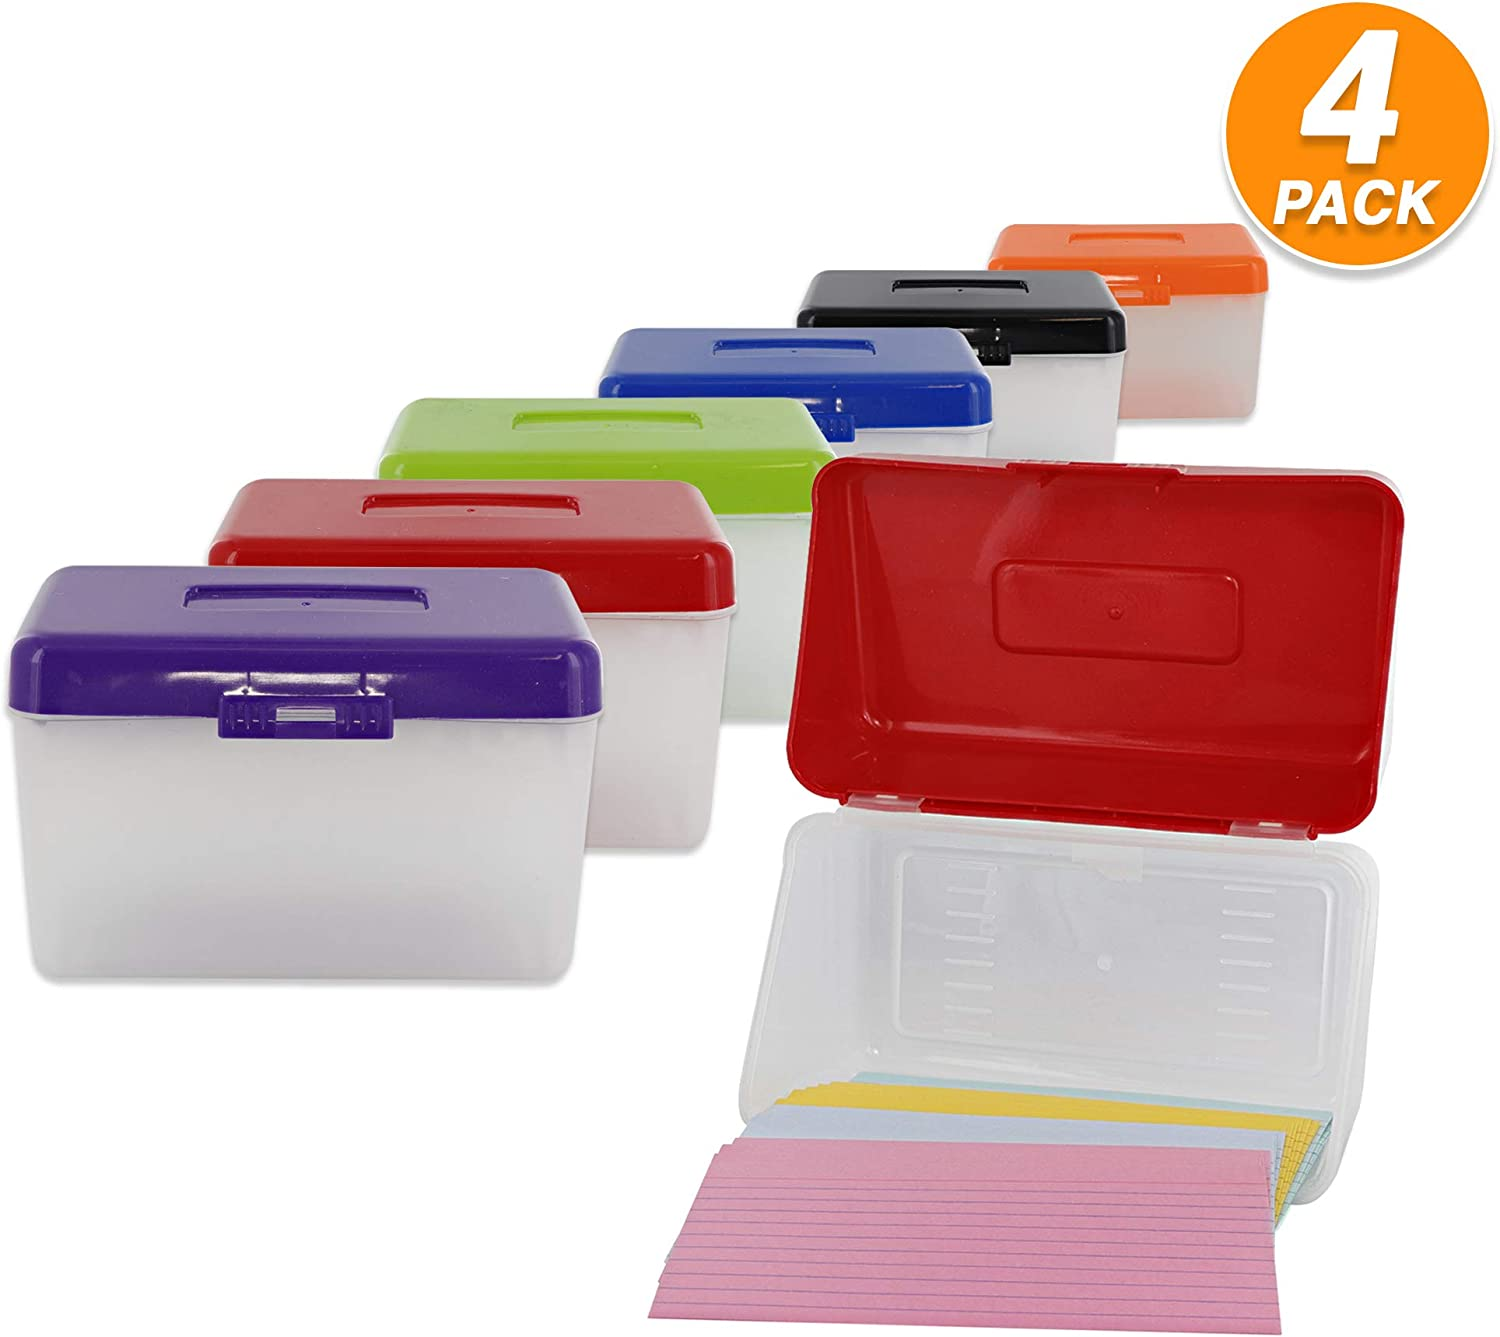 """3"""" X 5"""" Index Card Case Holds Upto 250 Cards Ideal for Filing Notes, Addresses & Recipes – (Pack of 4) - by Emraw"""